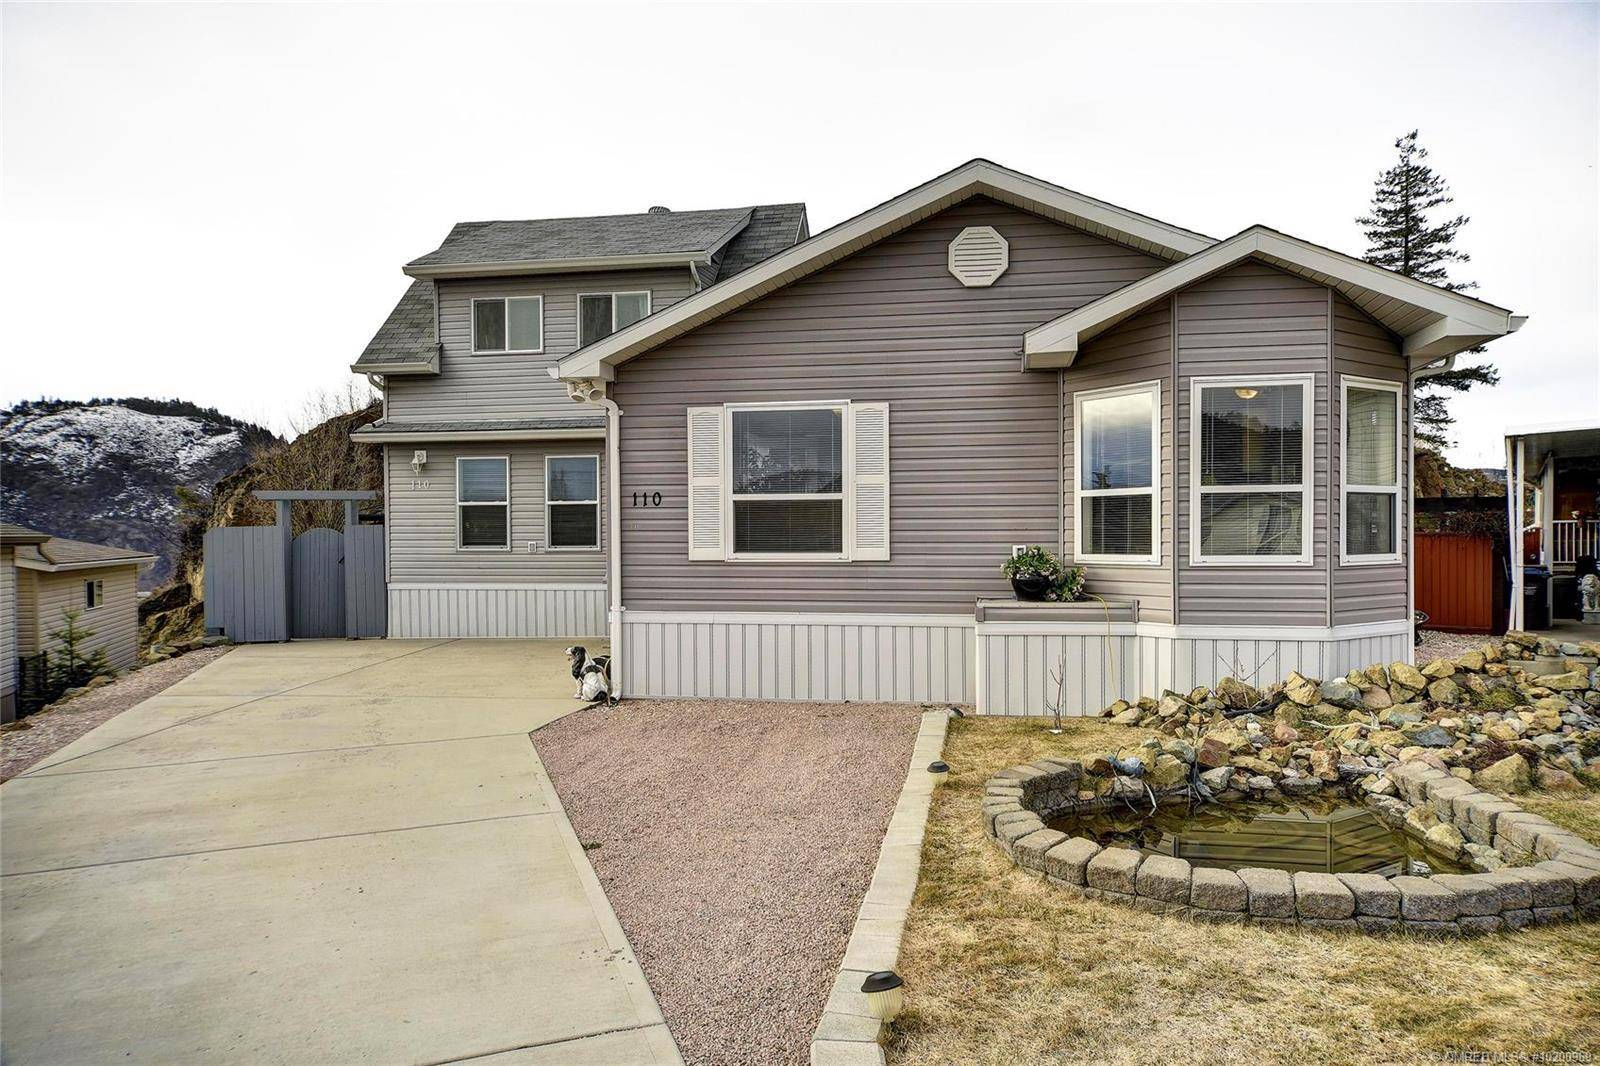 House for sale at 1750 Lenz Rd Unit 110 West Kelowna British Columbia - MLS: 10200969